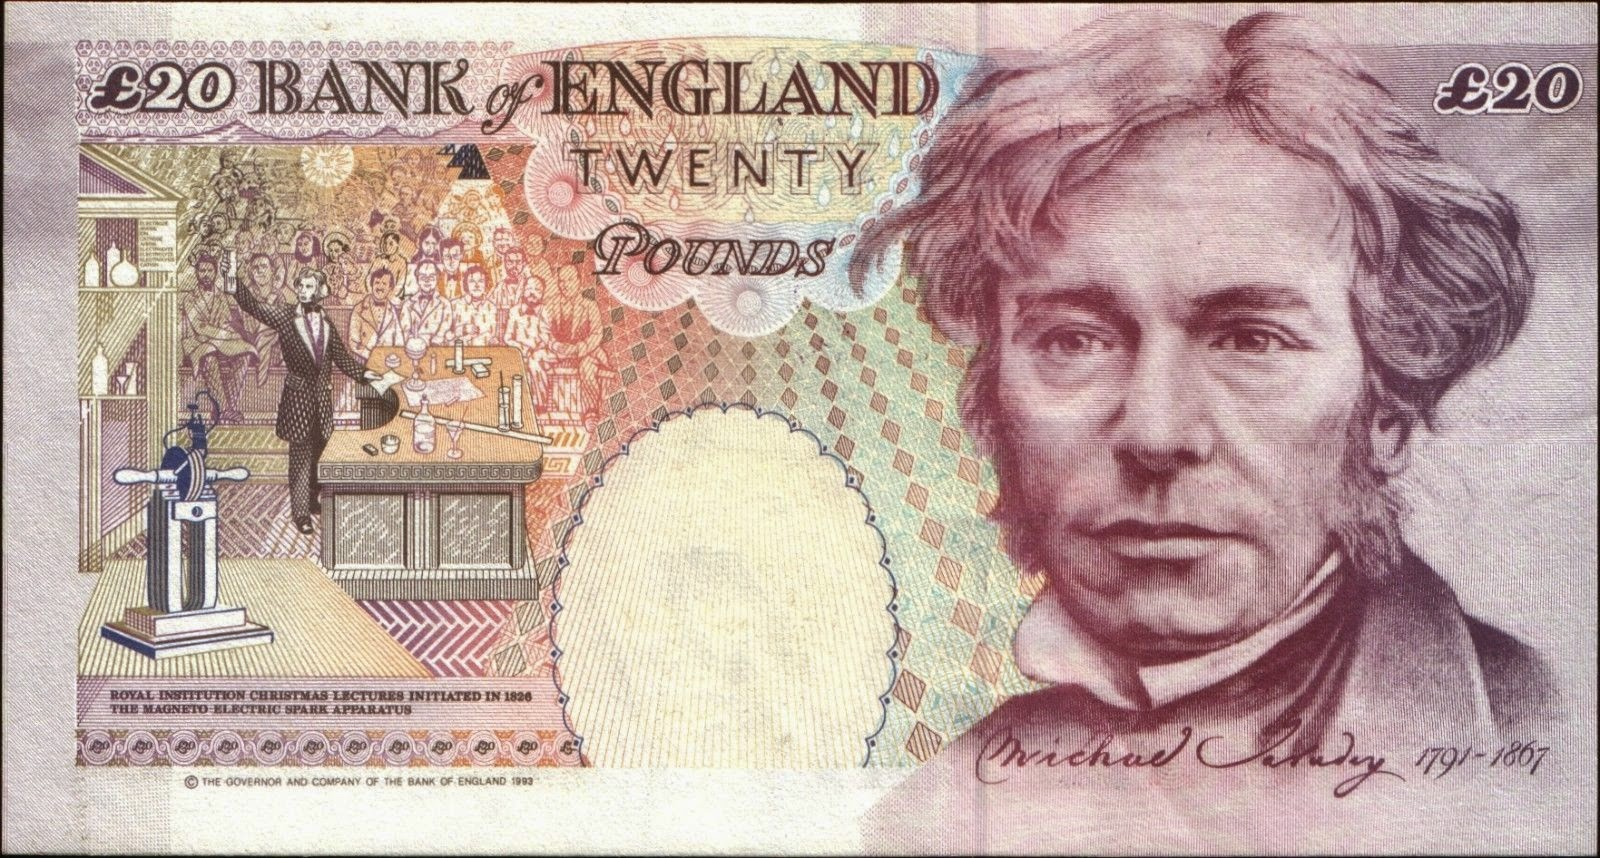 michael faraday 2 essay Michael faraday, frs (22 september 1791 – 25 august 1867) was an english chemist and physicist (or natural philosopher, in the terminology of the time) who contributed to the fields of electromagnetism and electrochemistry.